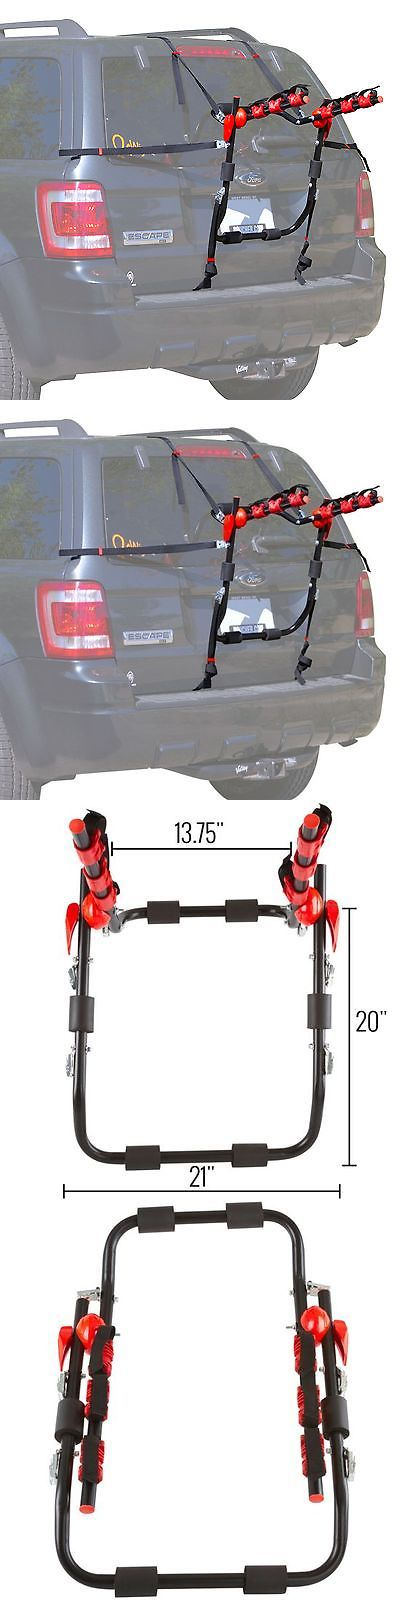 Car and Truck Racks 177849: Trunk-Mount 3-Bike Carrier Hatchback Suv Or Car Sport Bicycle Rack -> BUY IT NOW ONLY: $54.99 on eBay!